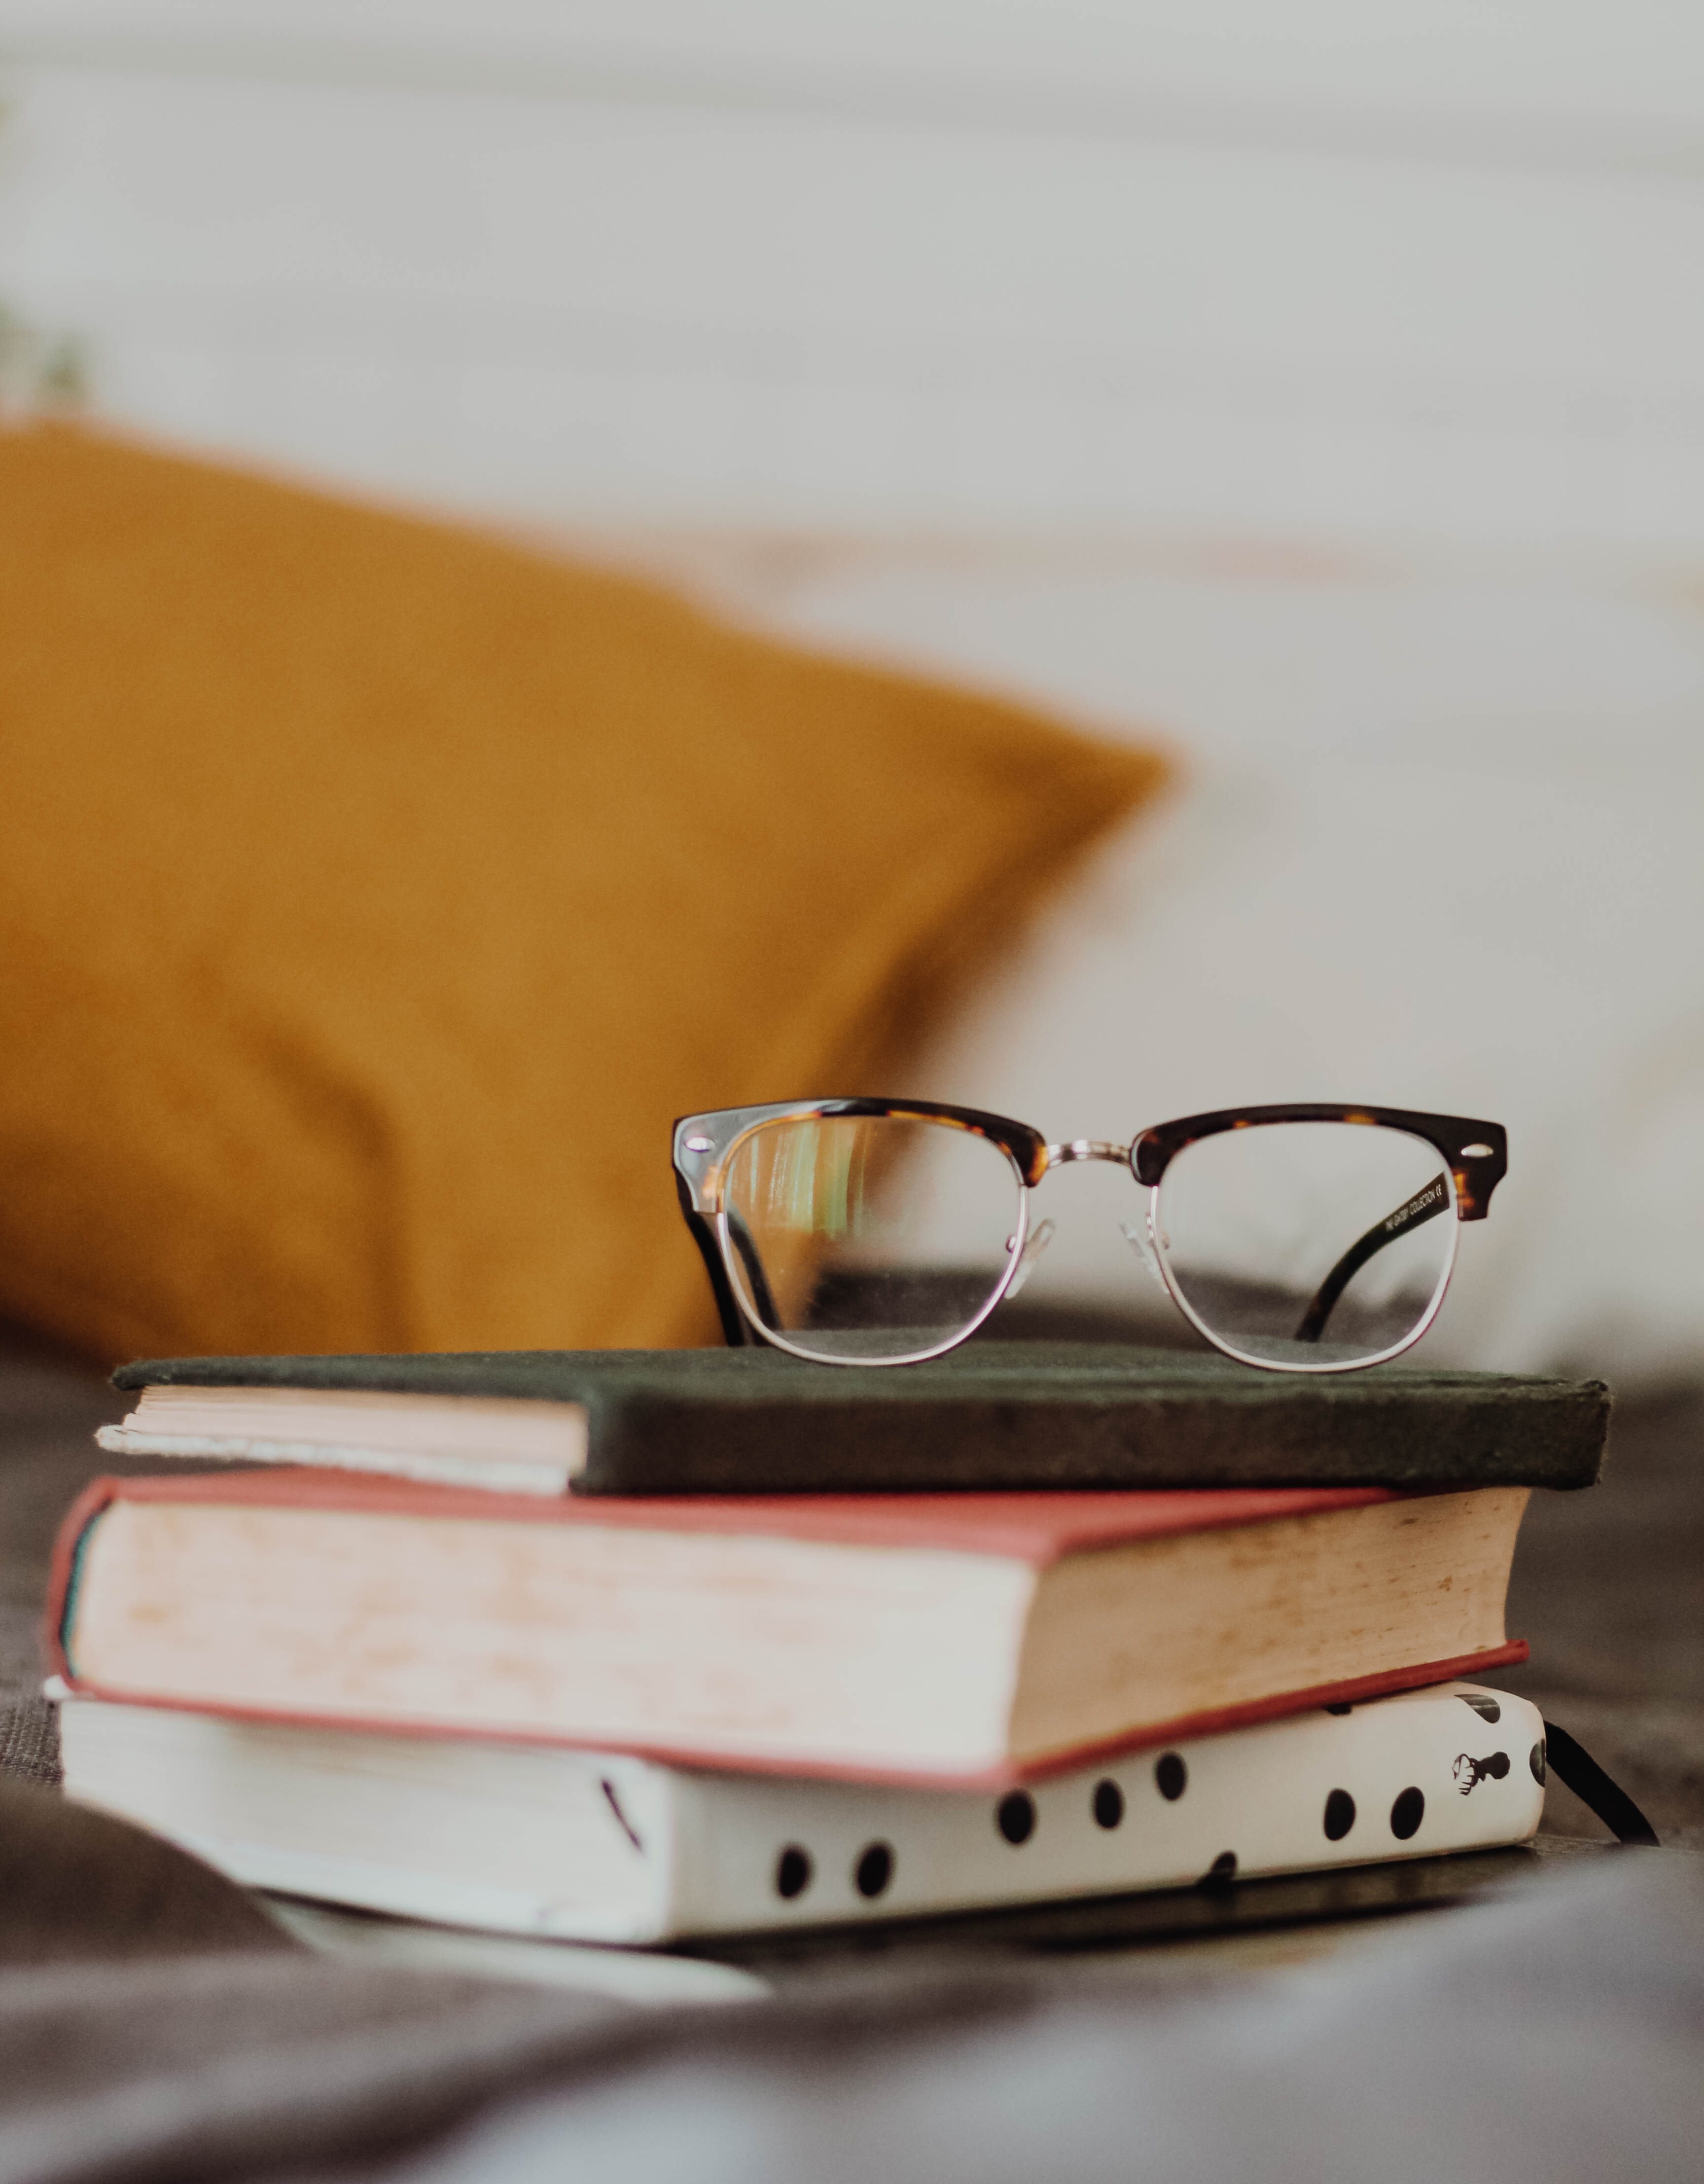 Creative Writing: Have you Ever Thought about Writing your Life Story? - 3 Night : Chrissie Hall